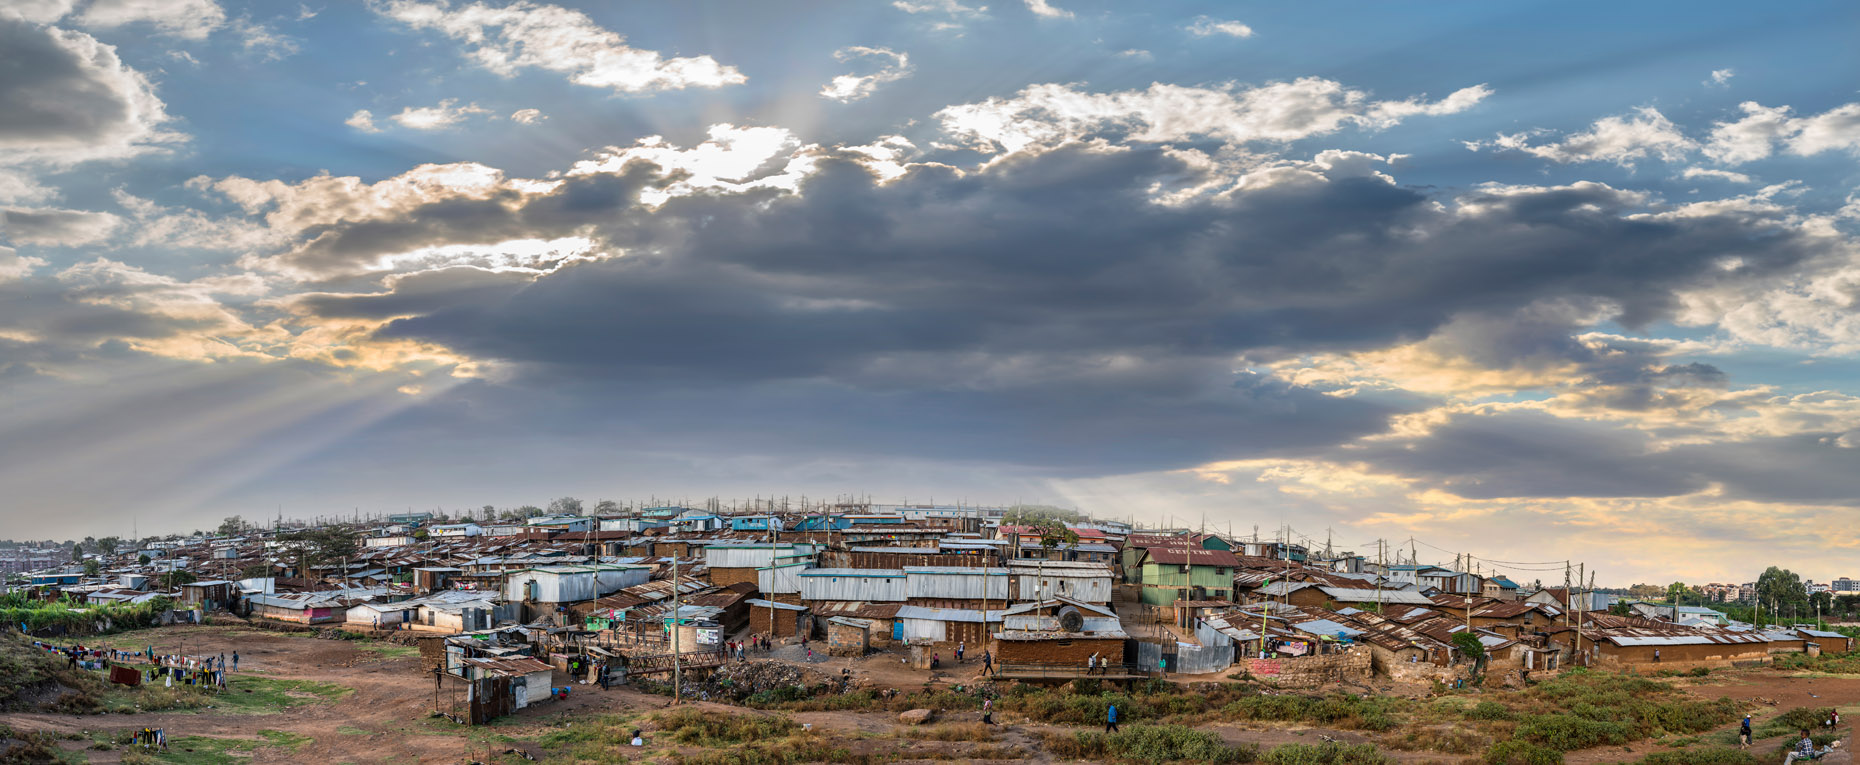 MLS_2021_Places_NEW_Nairobi_Slum_3_6_2019_Retouched